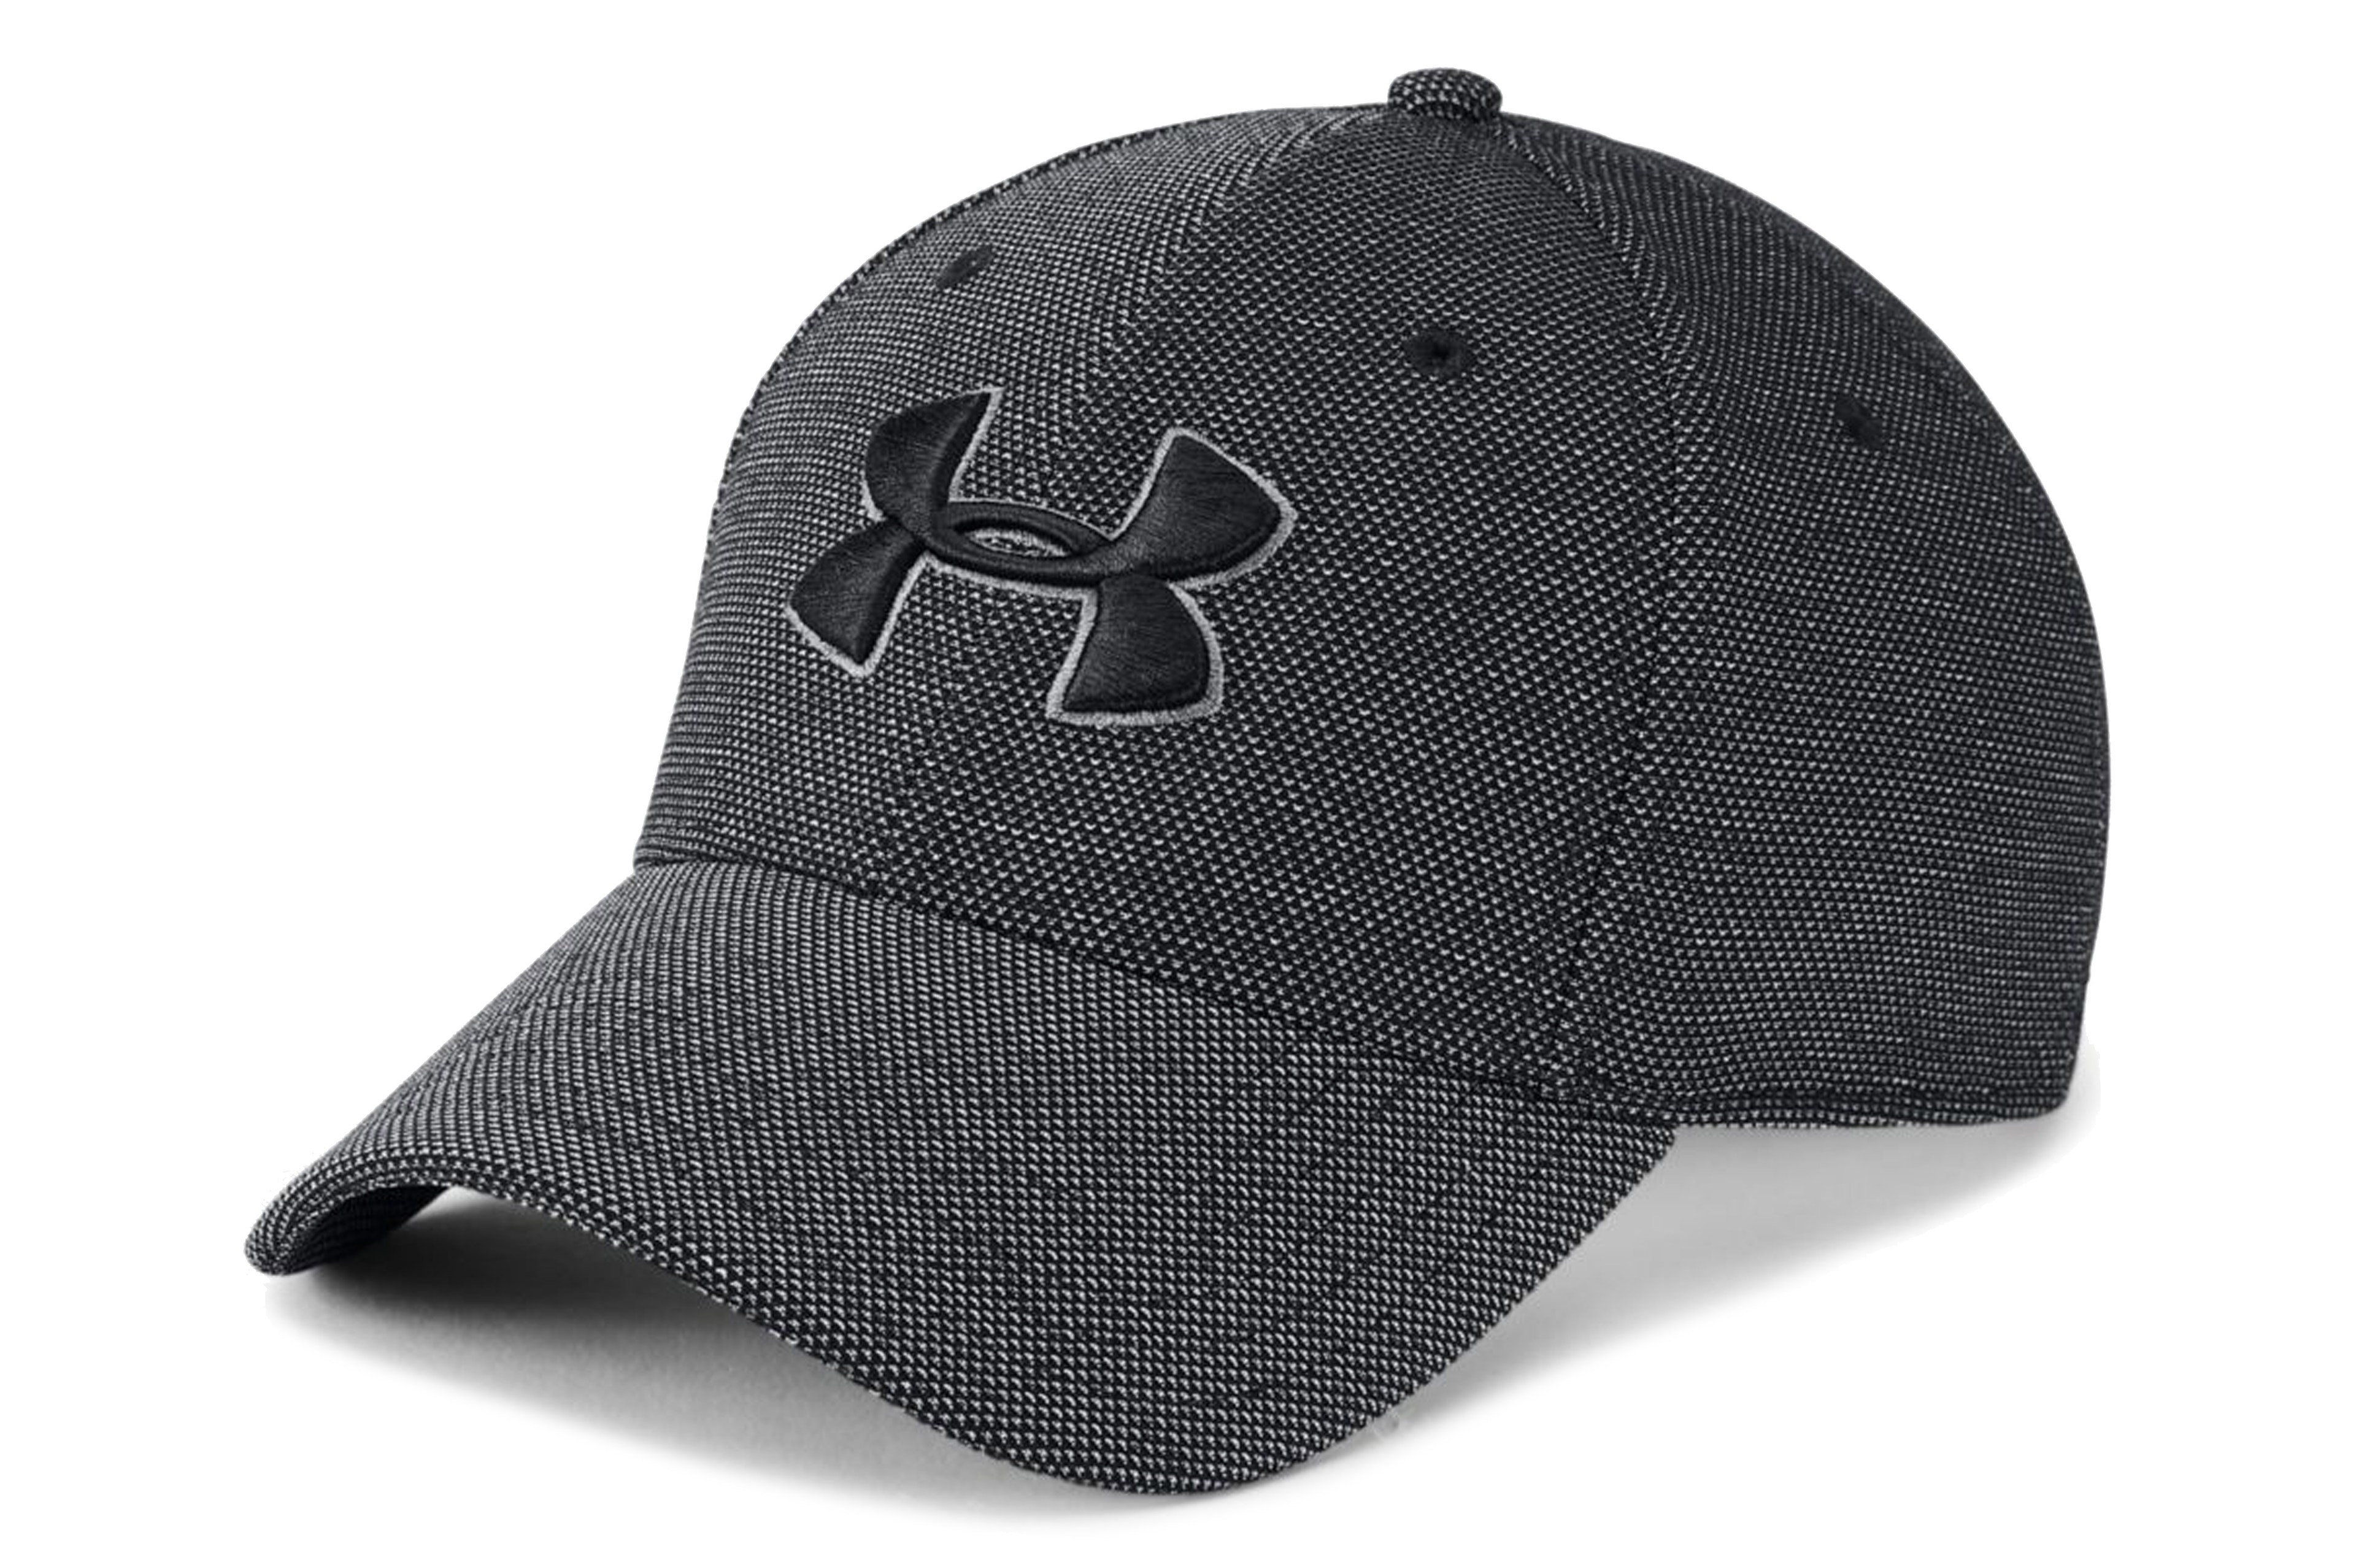 Under Armour Mens Heathered Blitzing 3.0 1305037-001